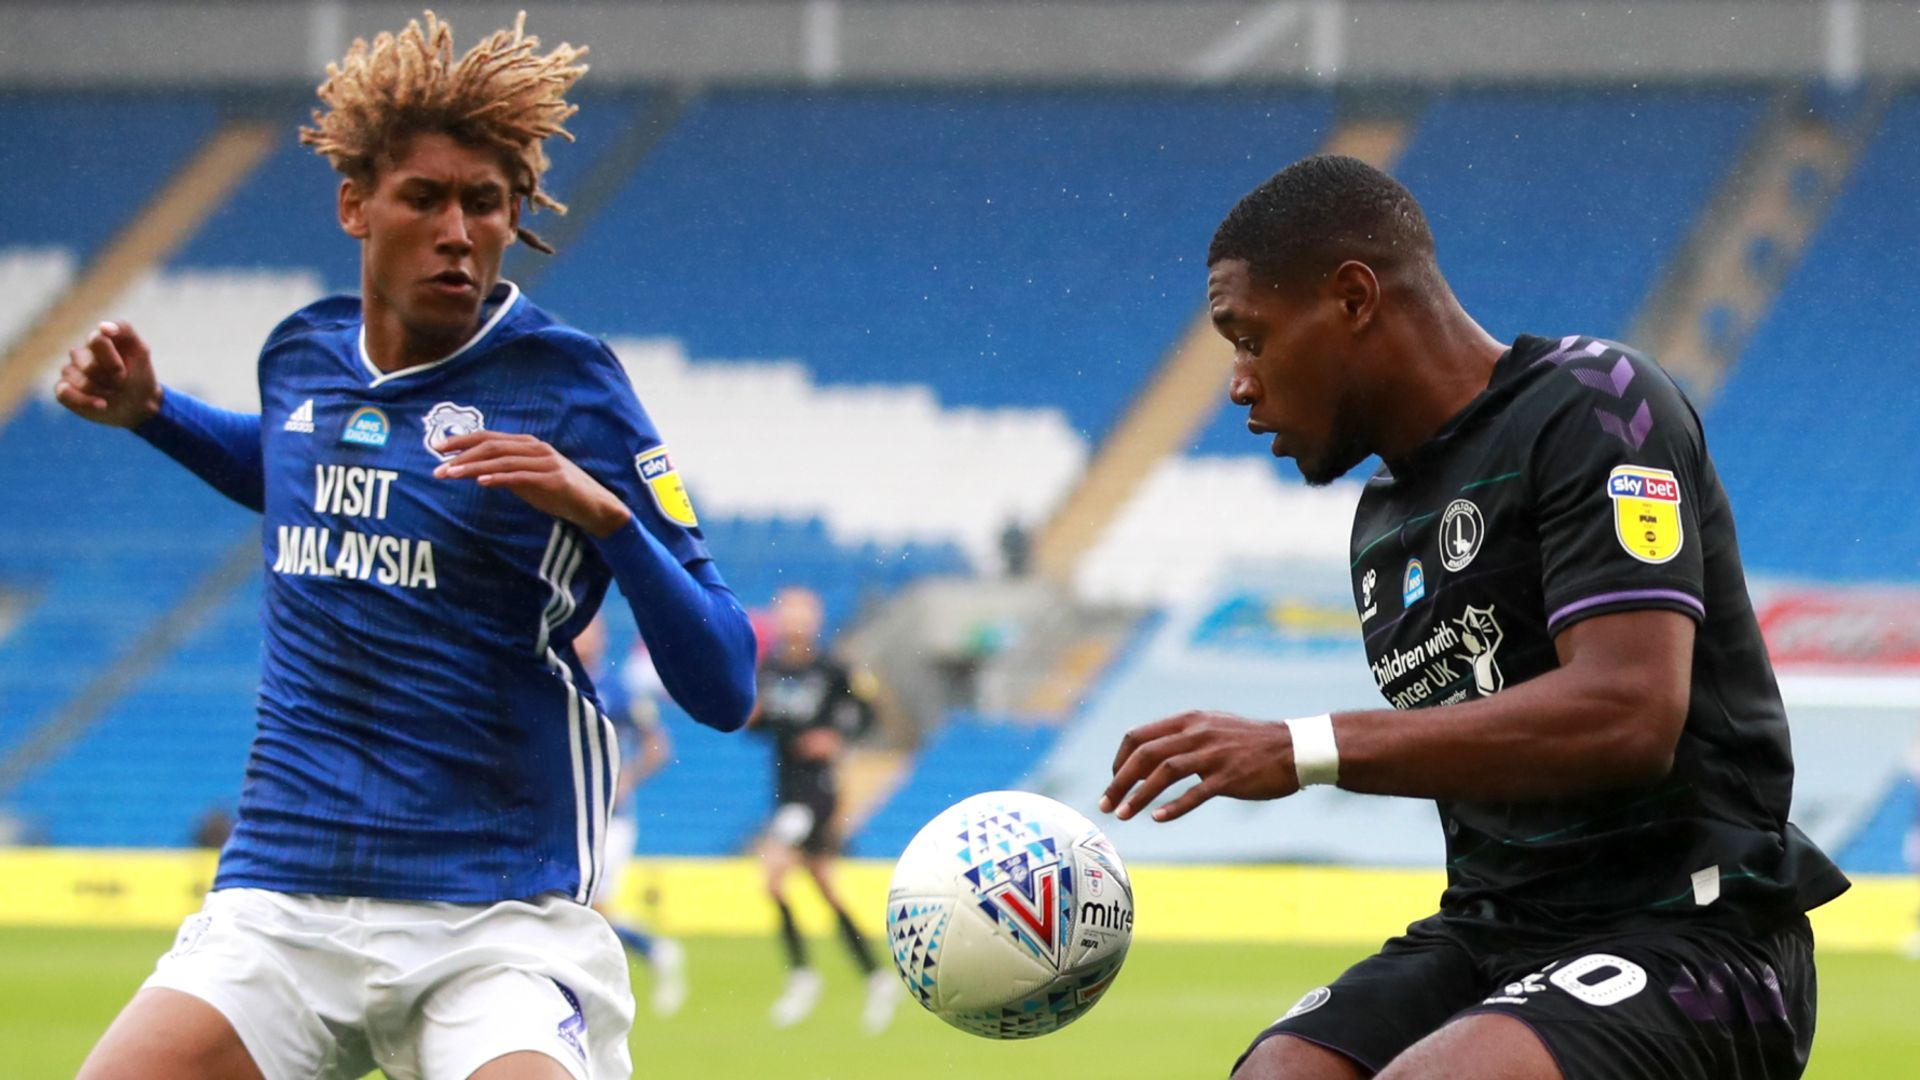 Championship LIVE! Cardiff, Brentford in action